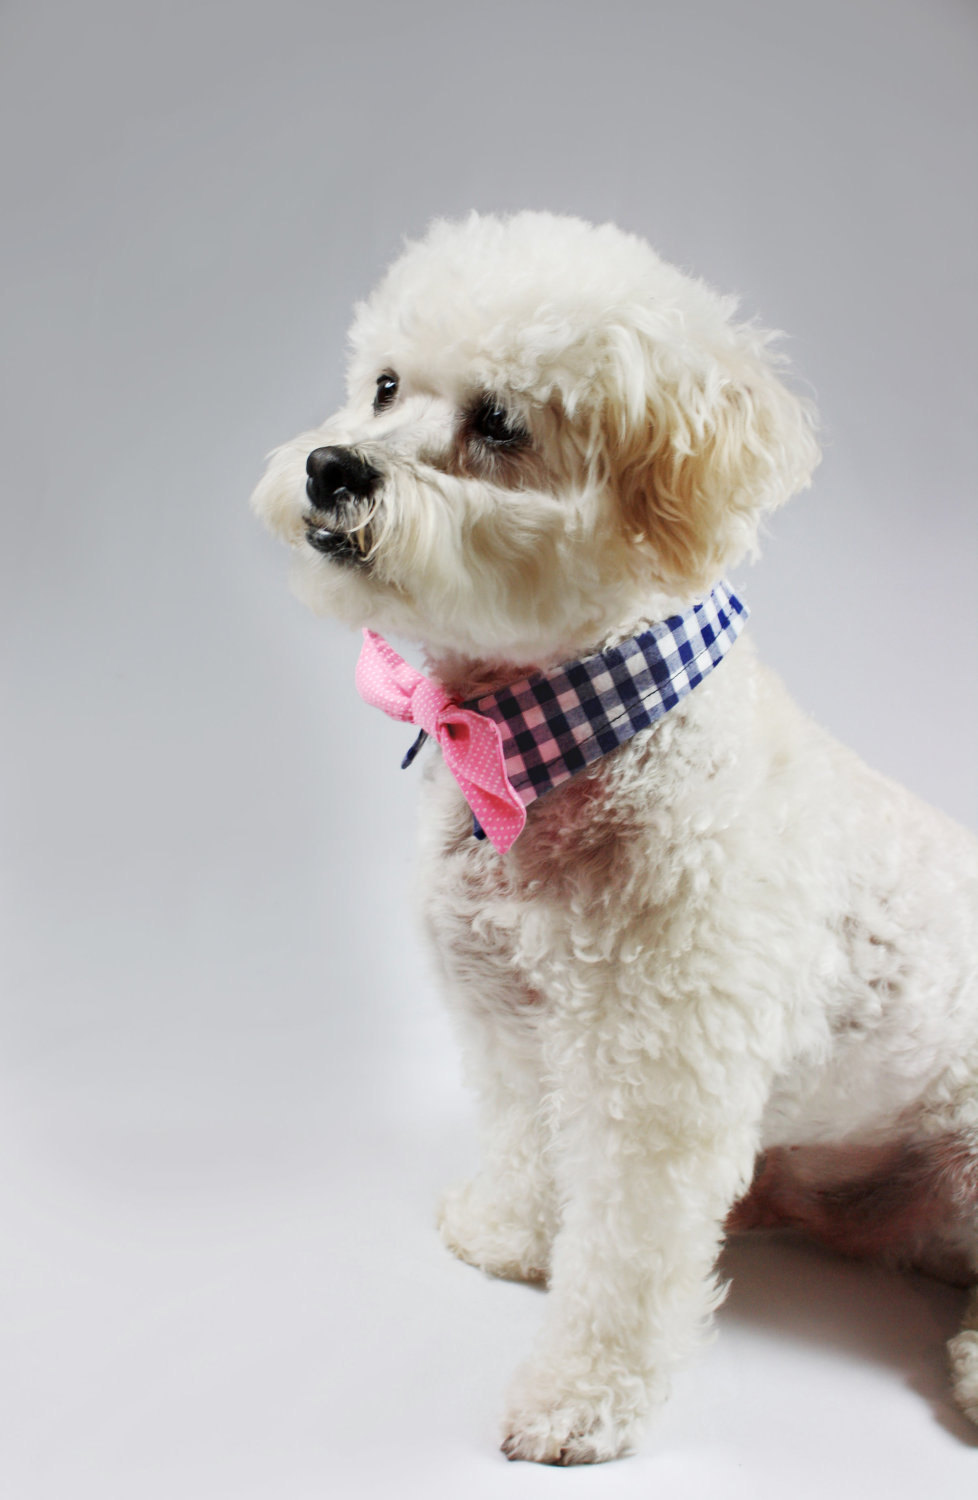 Adorable-wedding-attire-accessories-for-the-little-ones-in-the-wedding-dogs-bow-tie-pink-bow-tie-checkered-collar.full